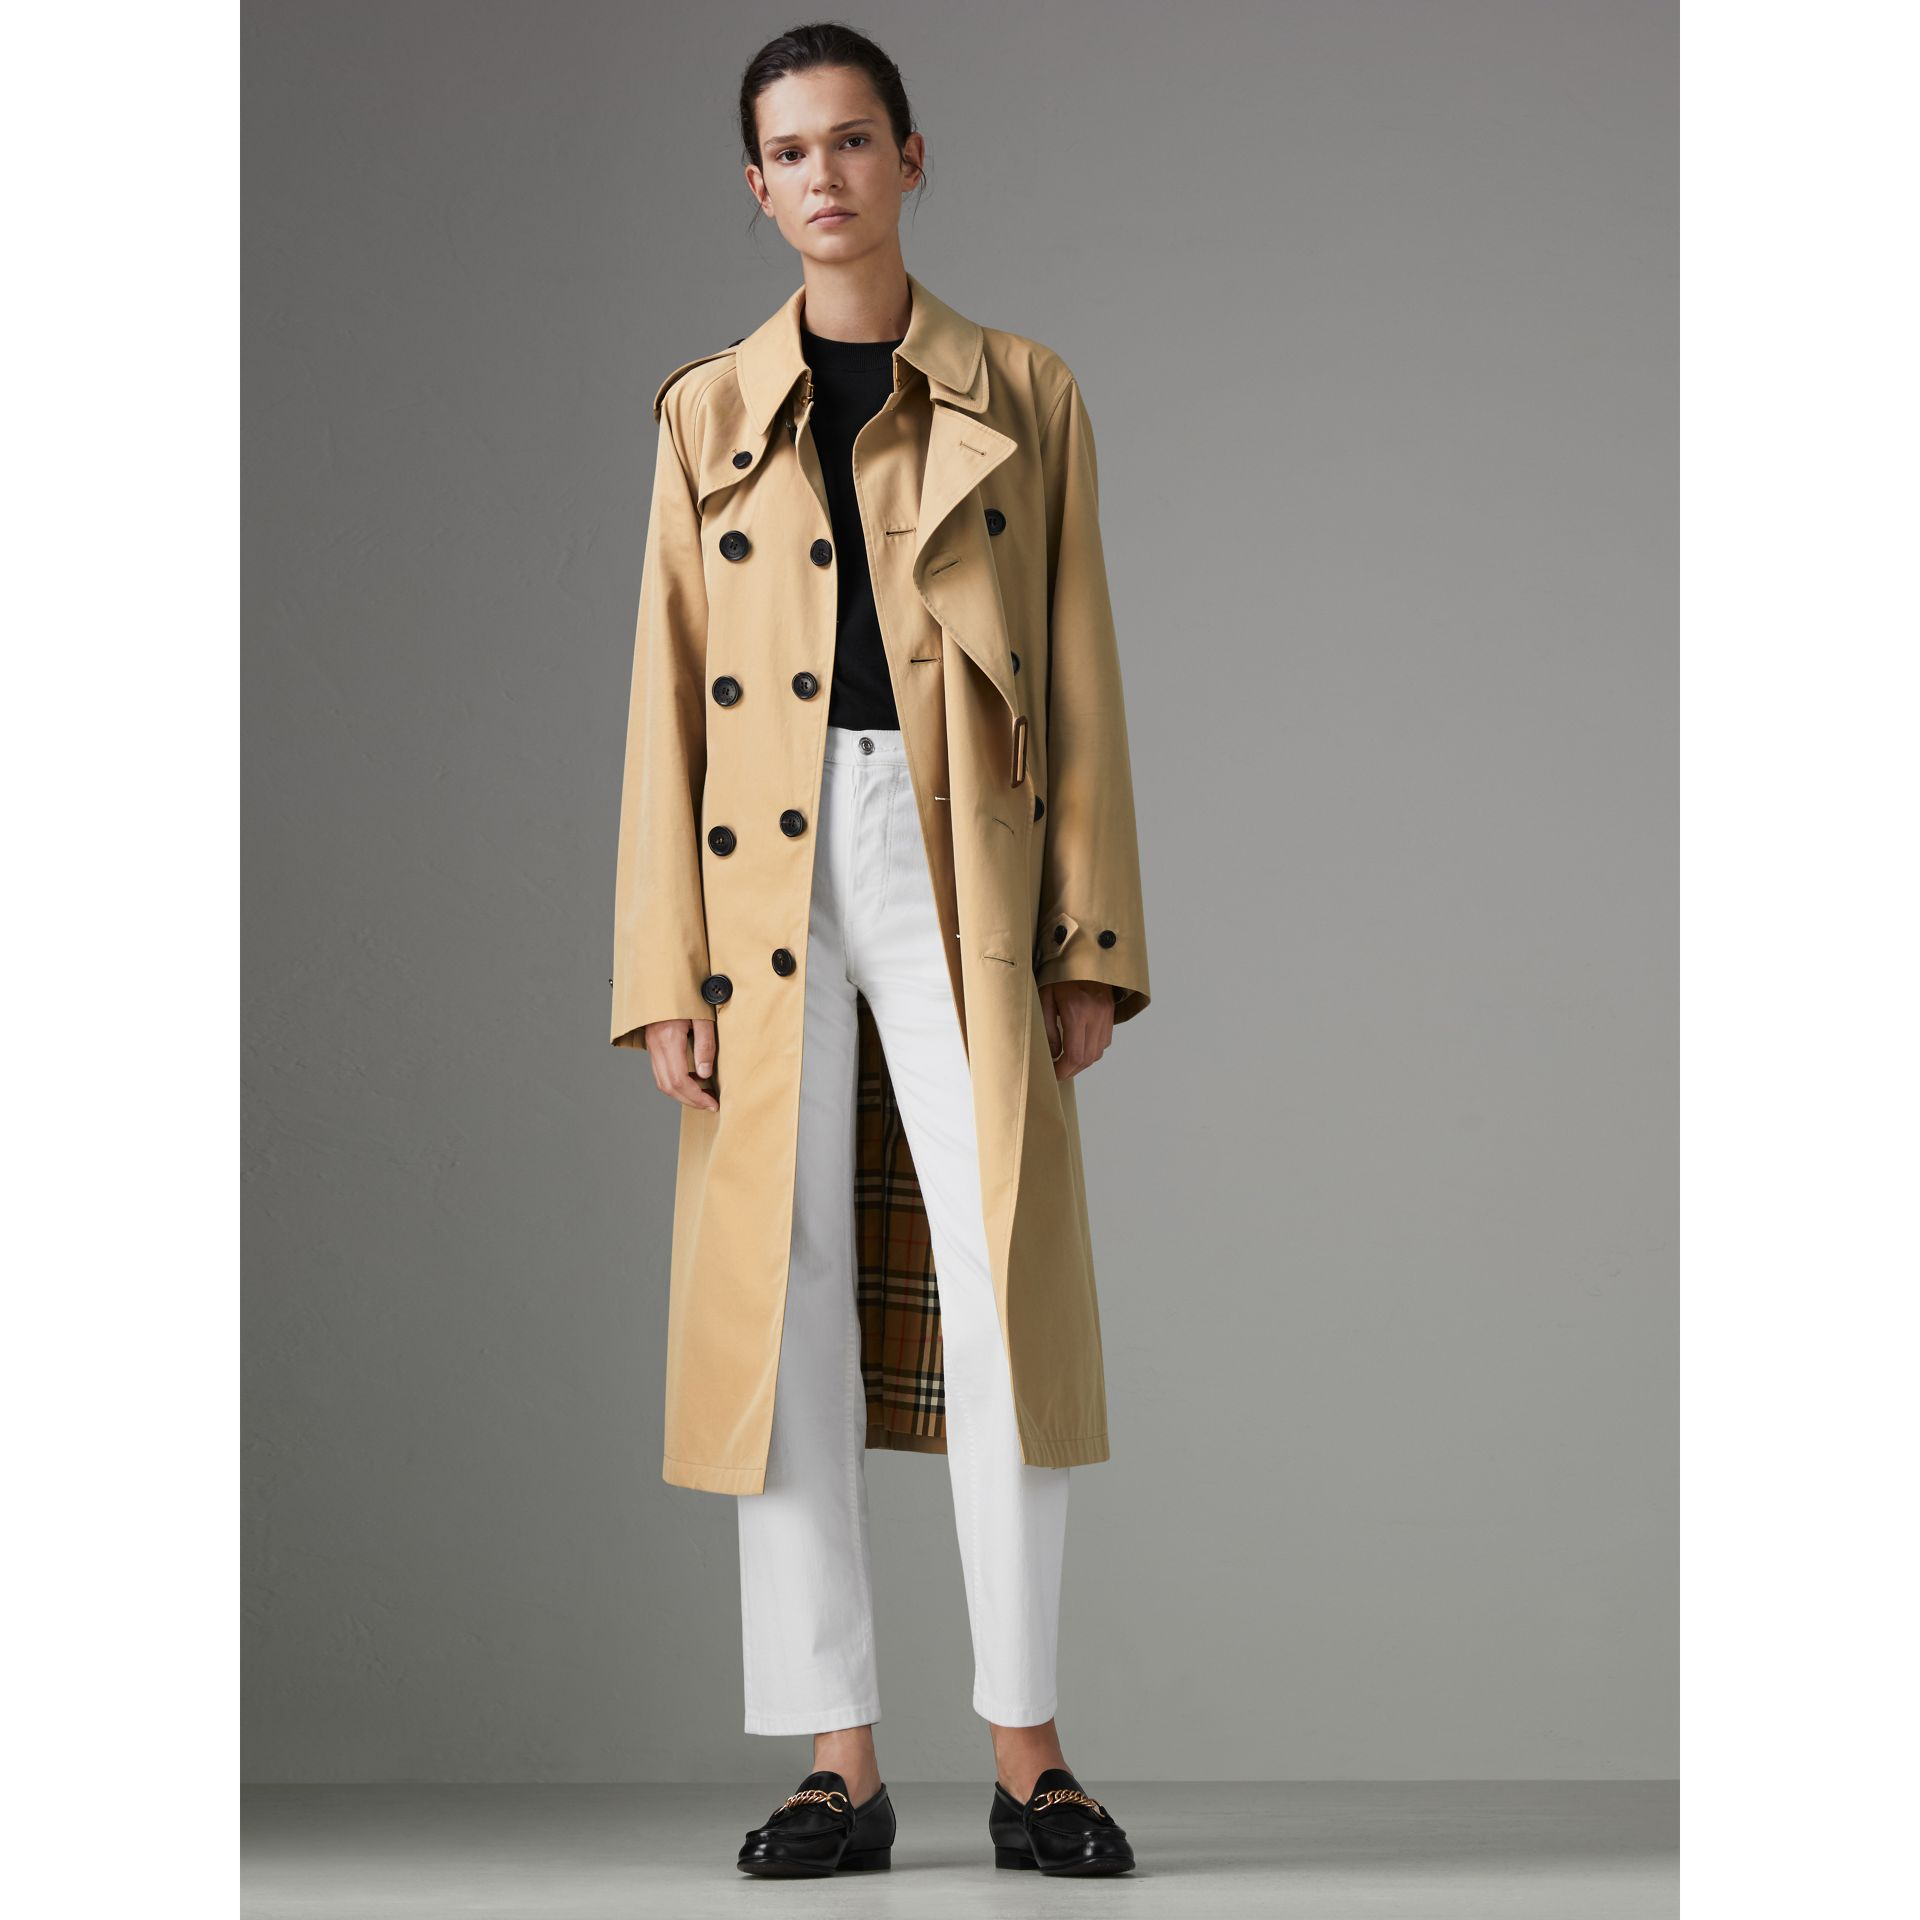 Gosha x Burberry Reconstructed Trench Coat in Honey | Burberry Singapore - gallery image 2